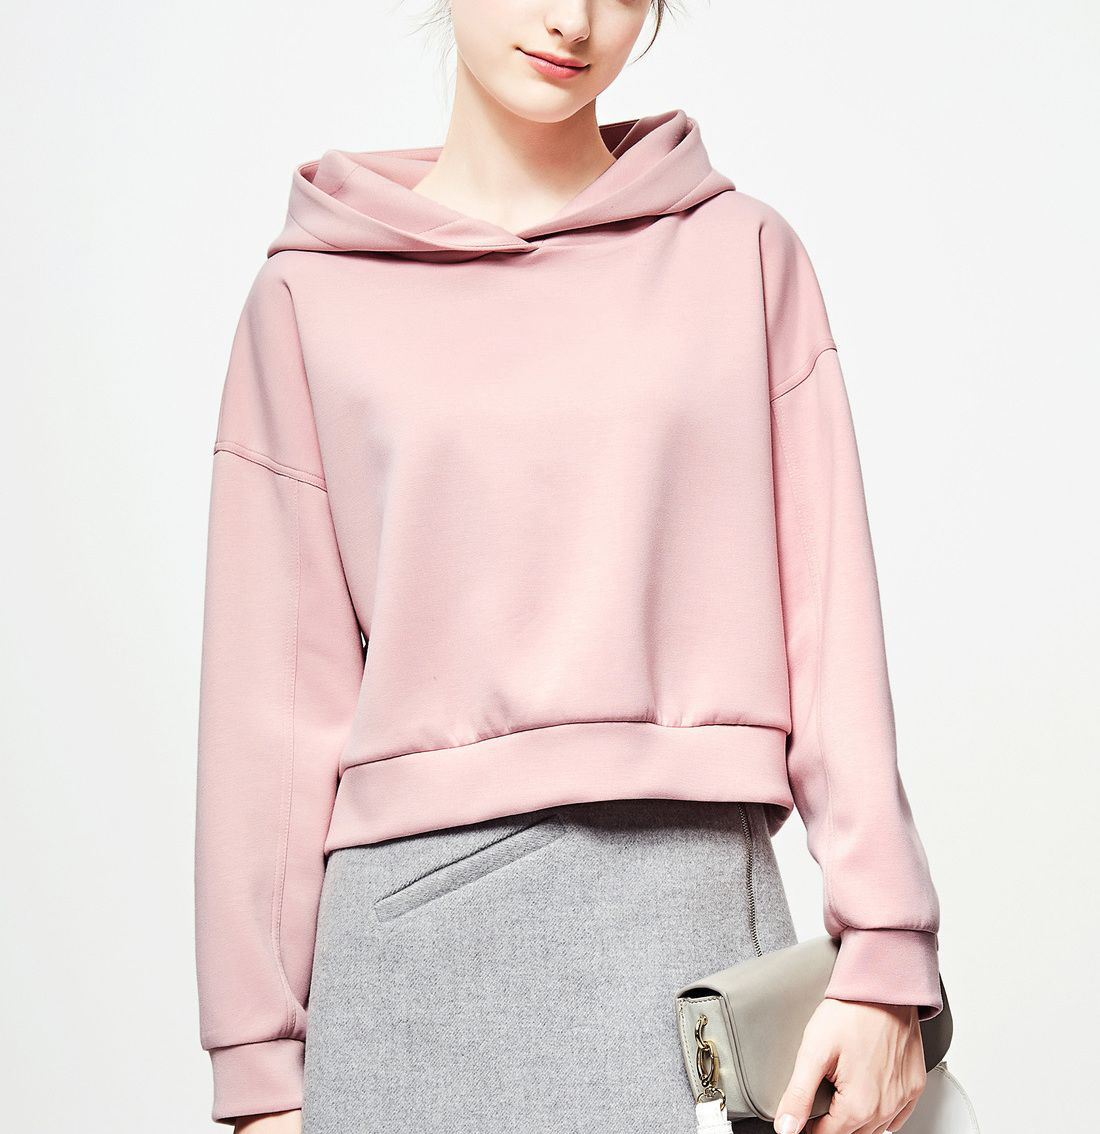 Winter New Loose Look Thin Head Casual Hooded Hooded Jacket Women's Short Style